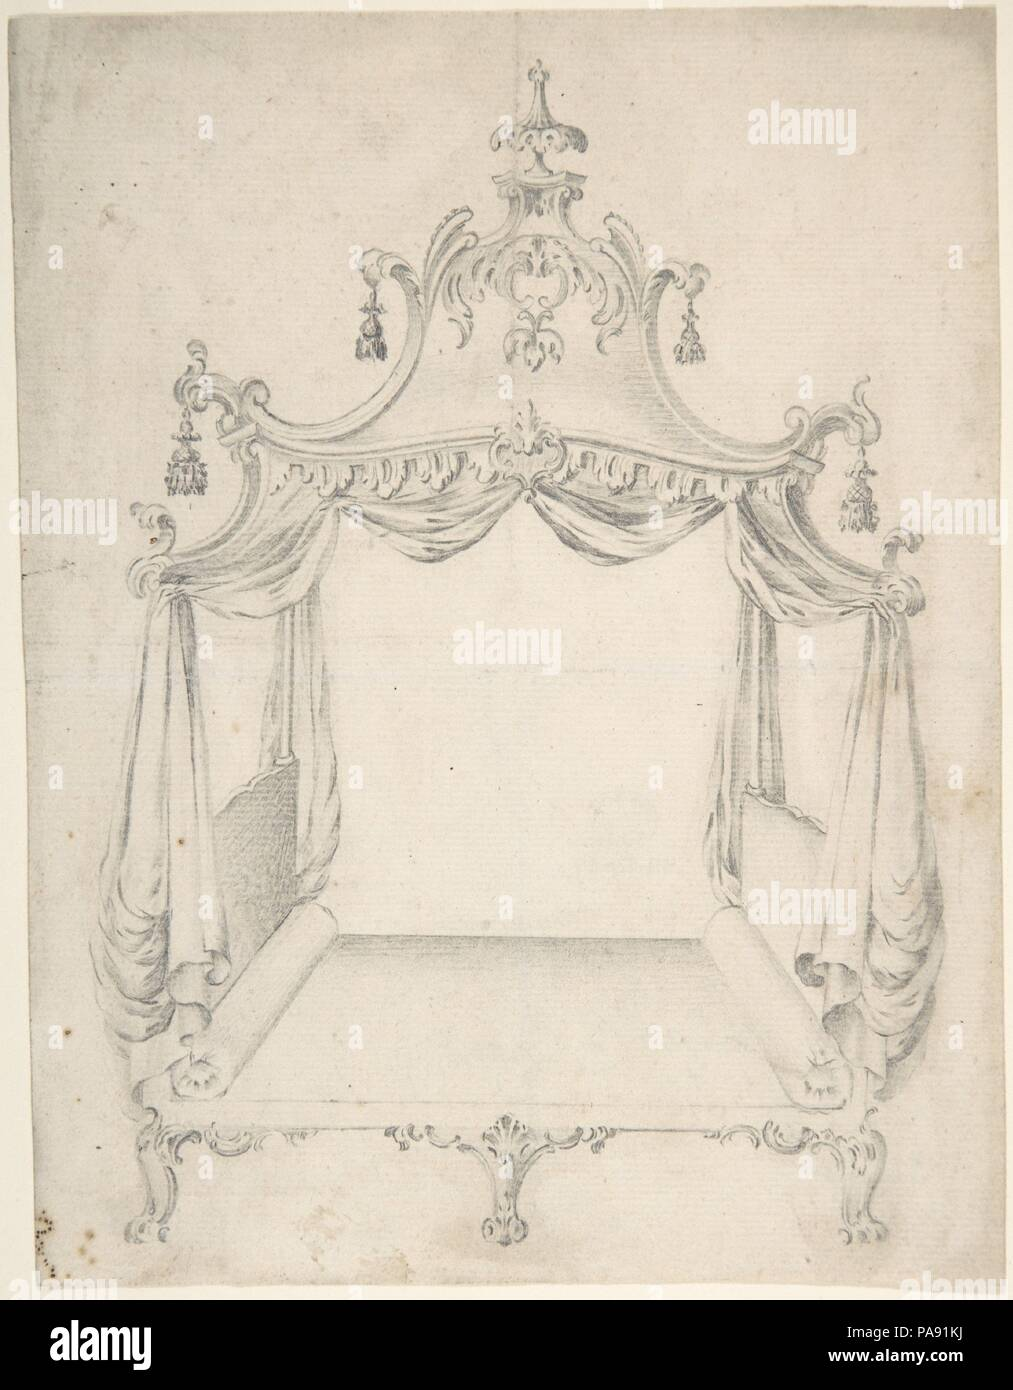 Design for a Four-poster Bed with Hangings. Artist: Anonymous, British, 18th century. Dimensions: sheet: 8 3/4 x 6 3/4 in. (22.2 x 17.1 cm). Date: 18th century. Museum: Metropolitan Museum of Art, New York, USA. - Stock Image